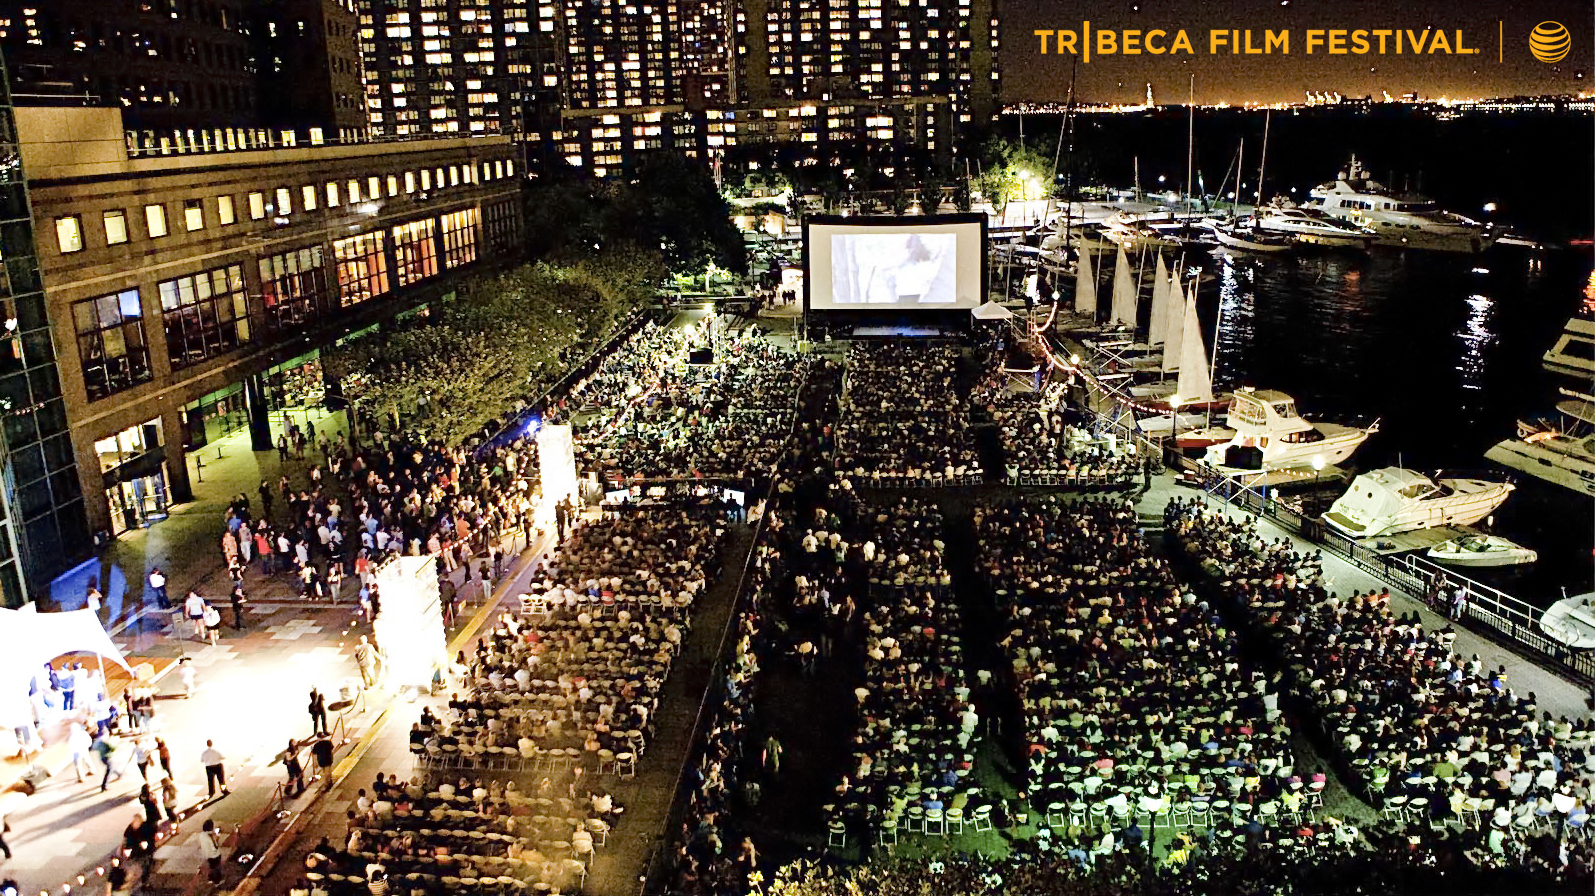 Win tickets to the Tribeca Film Festival